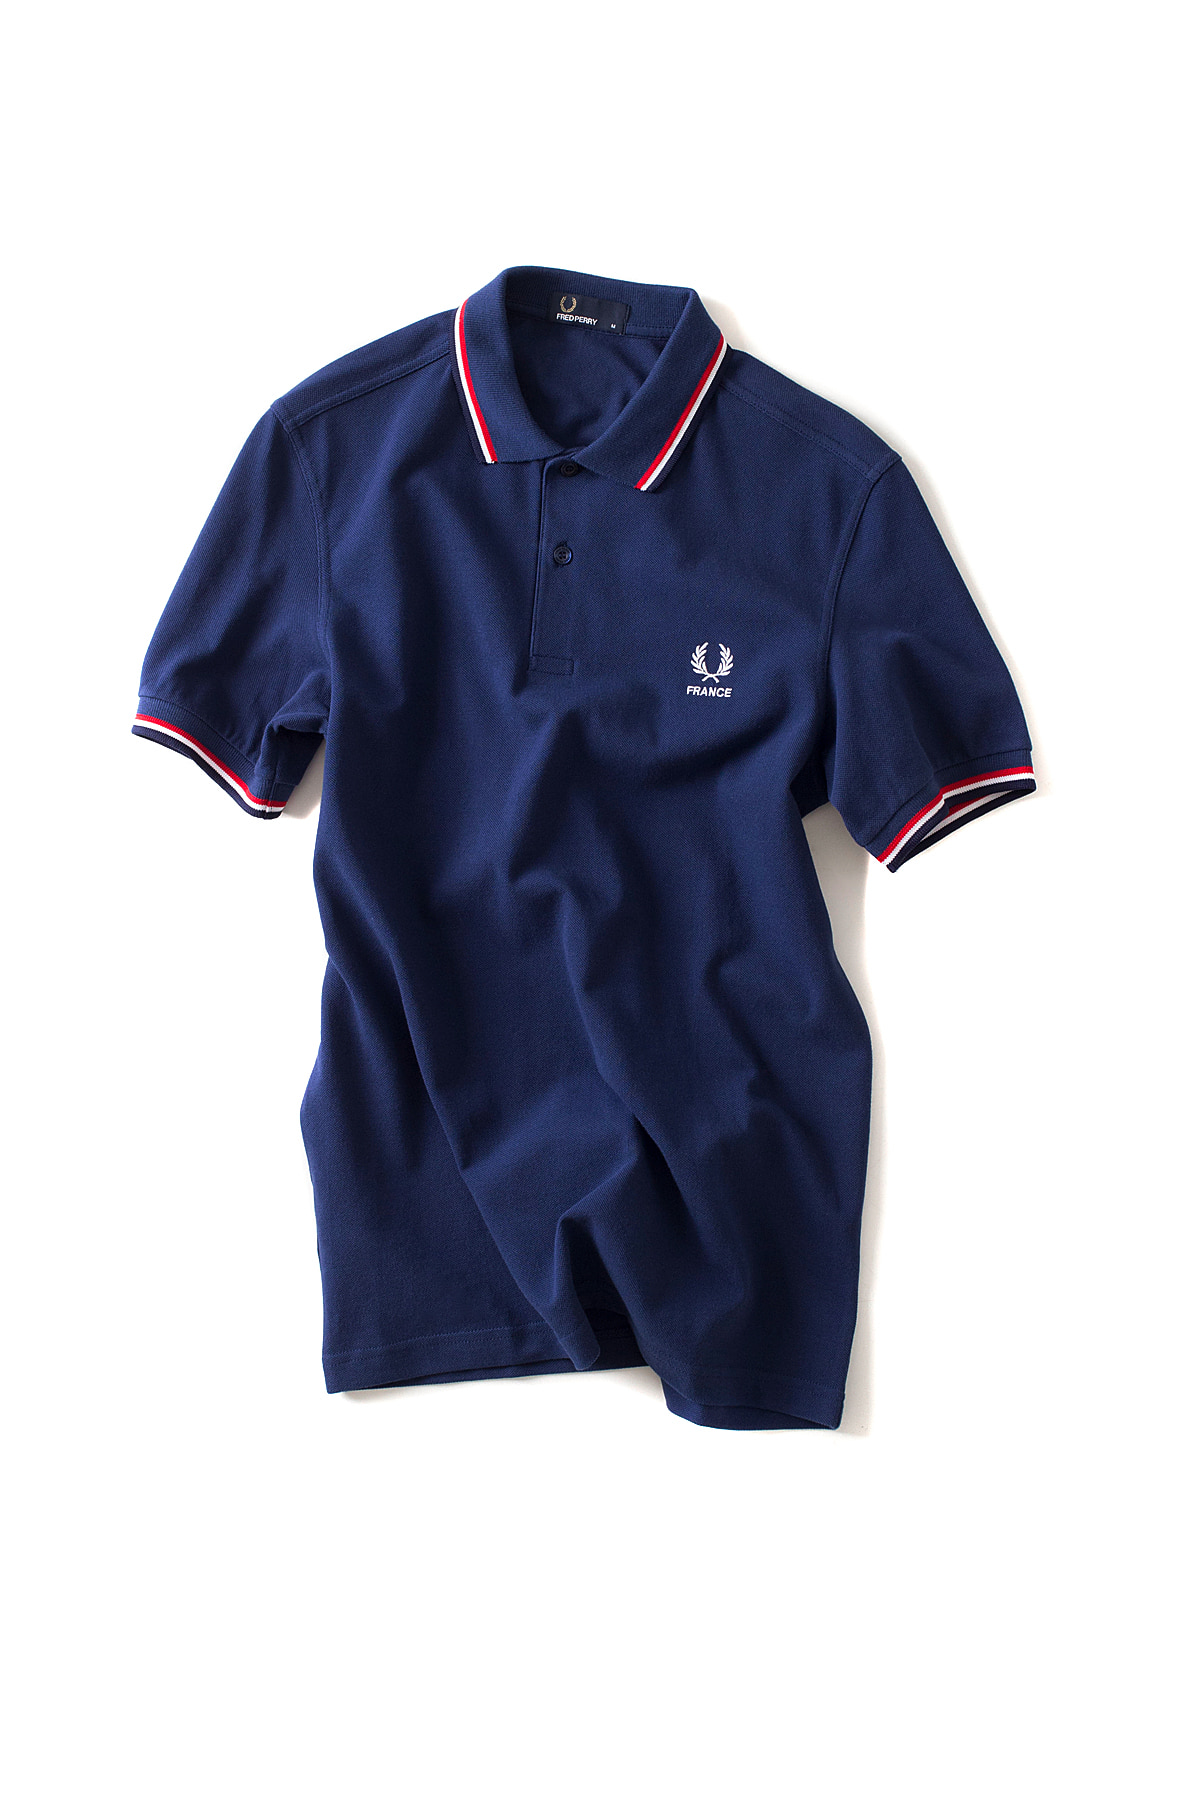 FRED PERRY : The Country Shirt FRANCE (Navy)